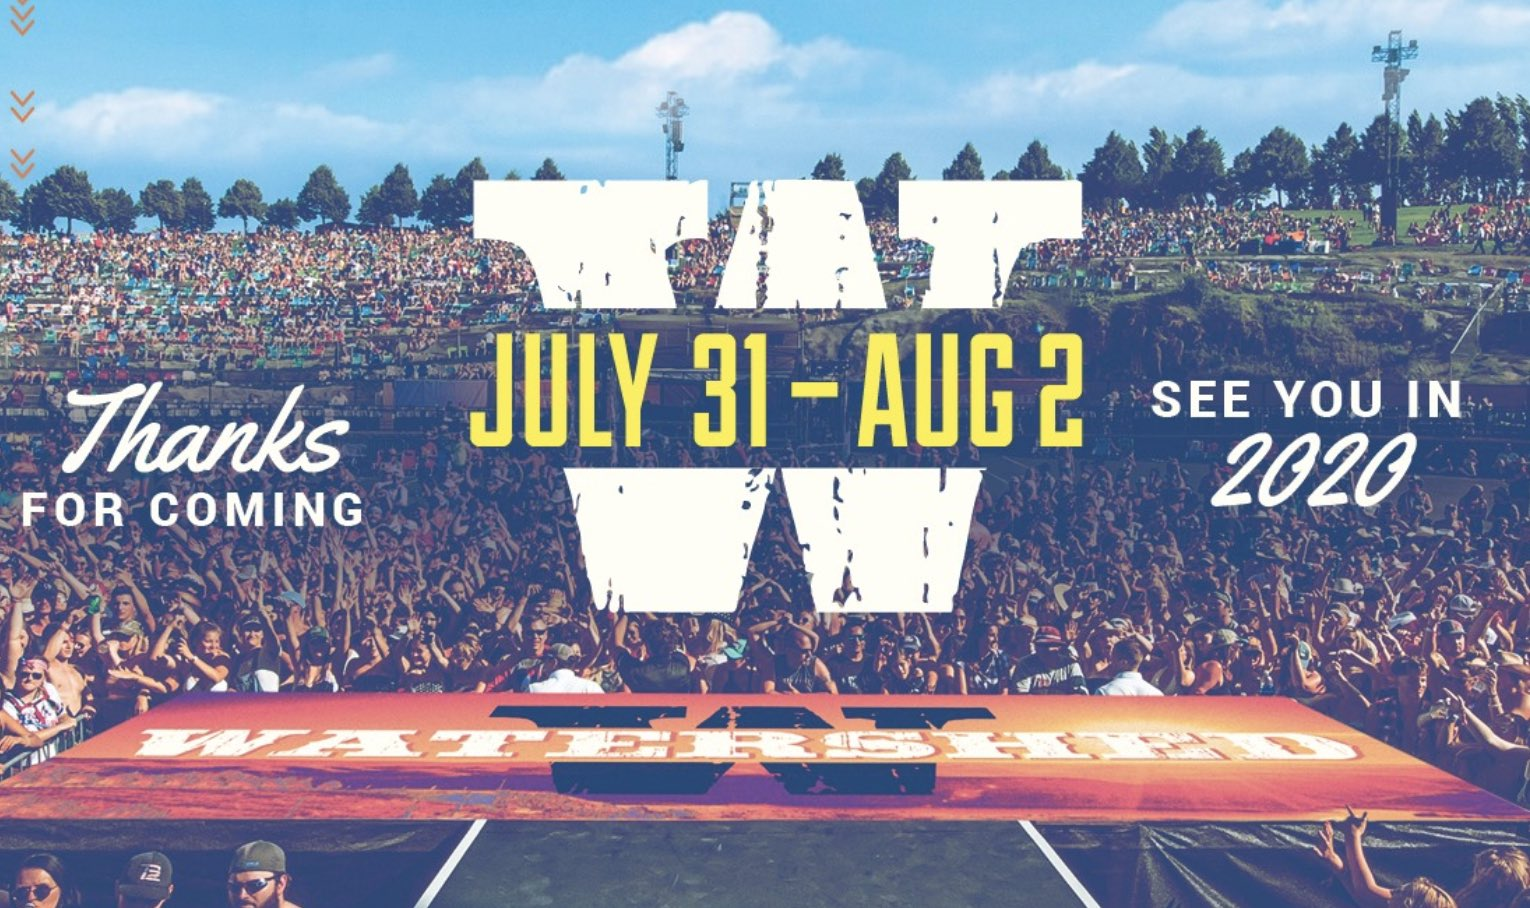 Watershed Country Music Festival - Best Washington Festivals 2020